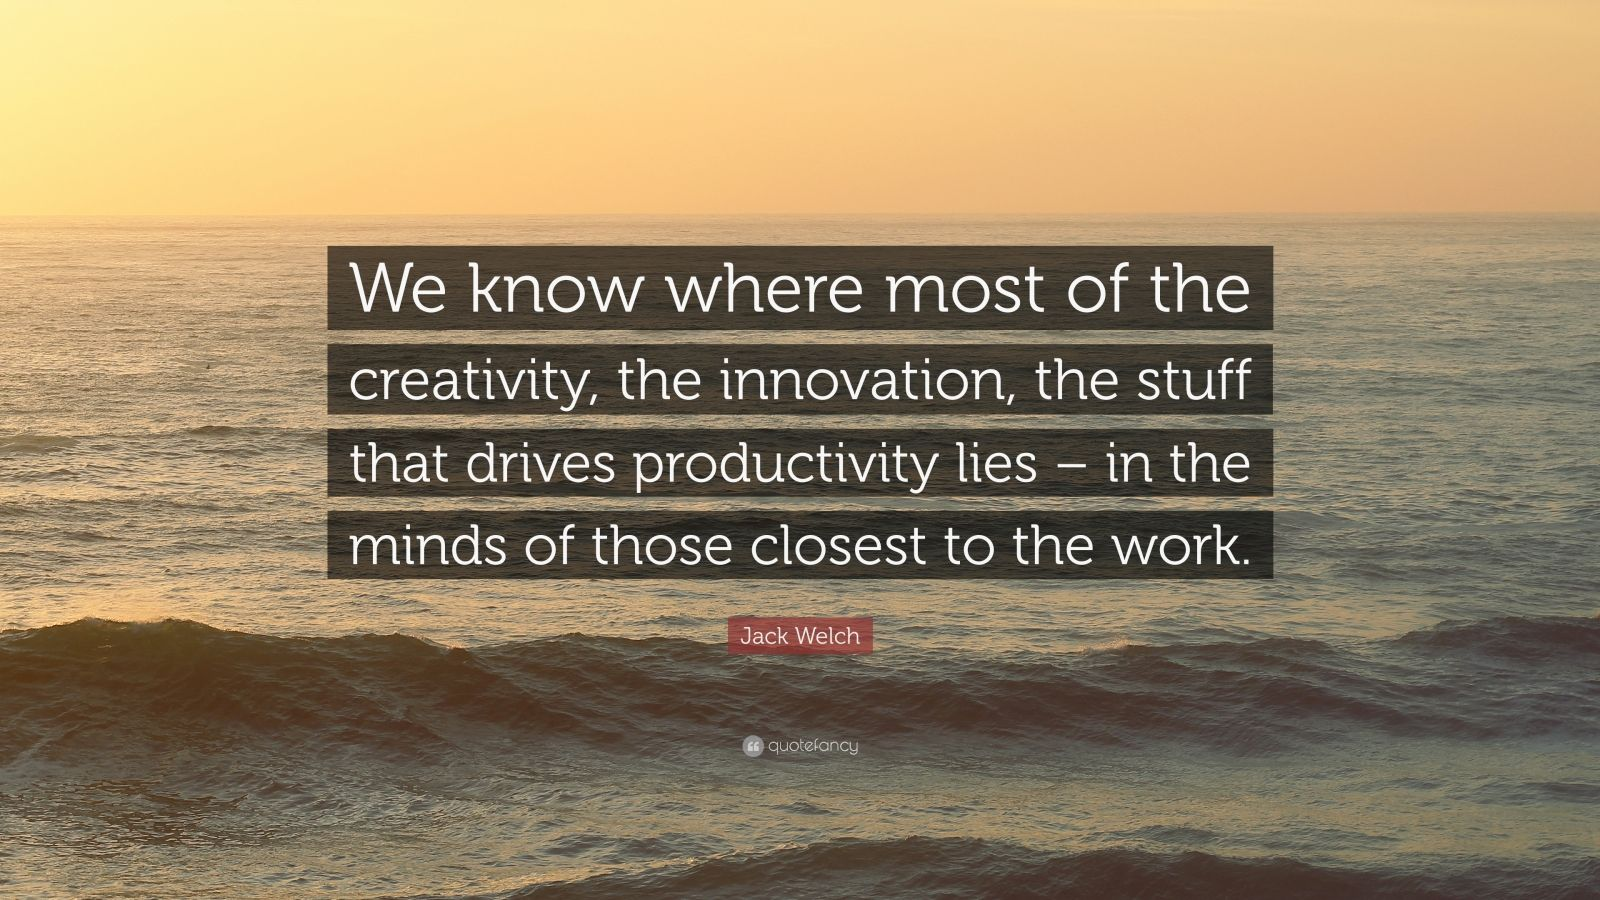 """Jack Welch Quote: """"We know where most of the creativity, the innovation, the stuff that drives productivity lies – in the minds of those closest to the work."""""""